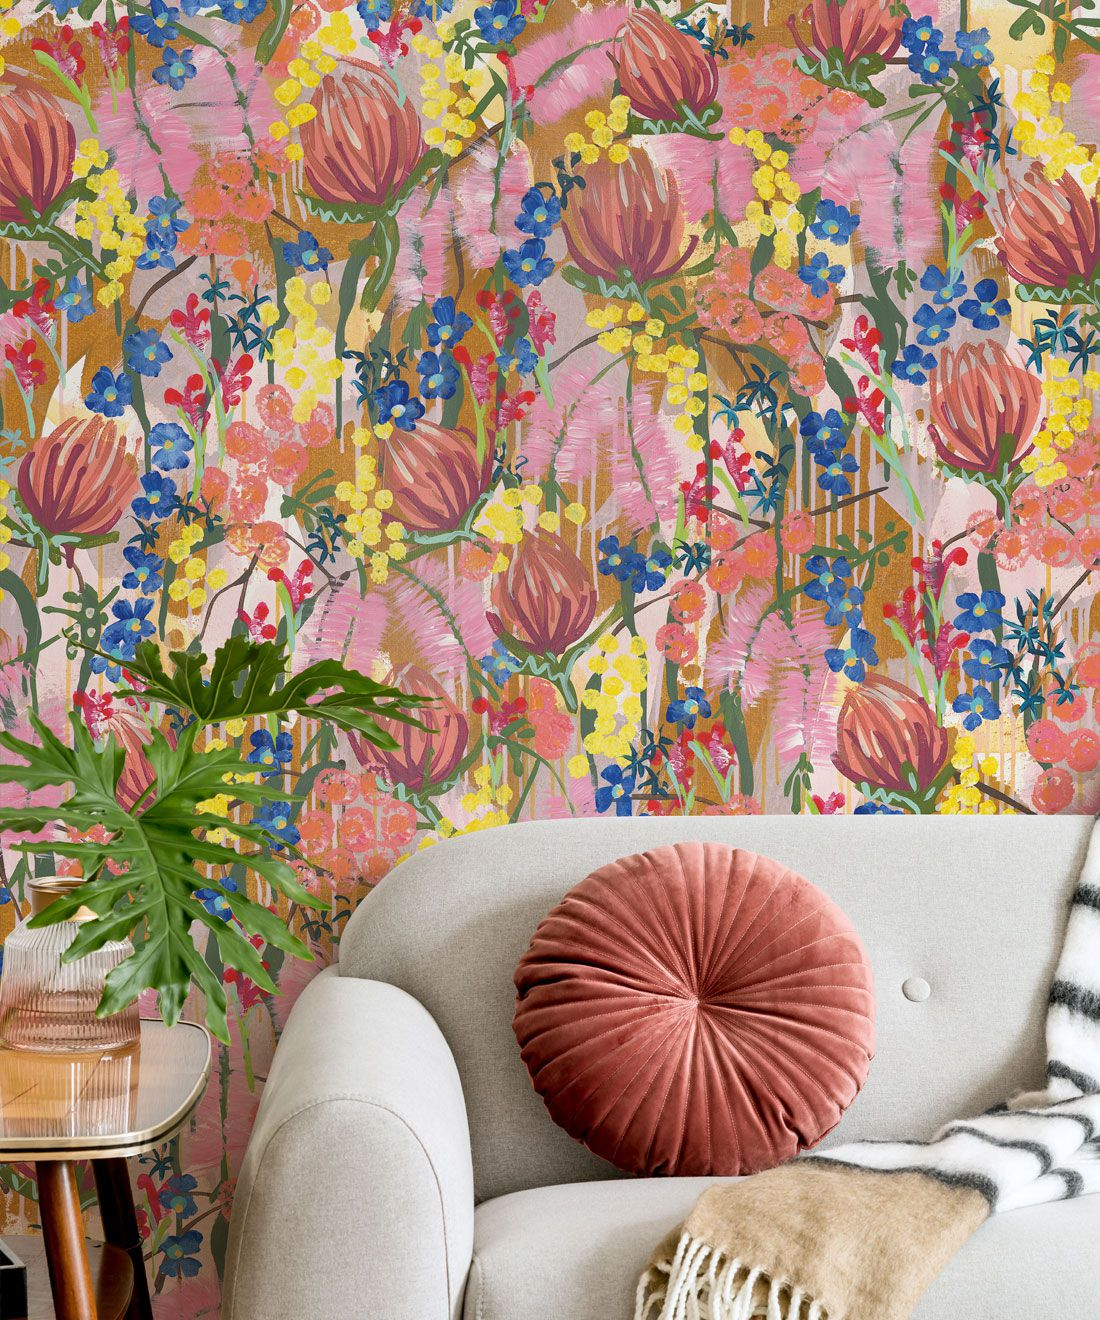 Acacia Wallpaper • Colourful Floral Wallpaper • Tiff Manuell • Abstract Expressionist Wallpaper • Close Up Insitu